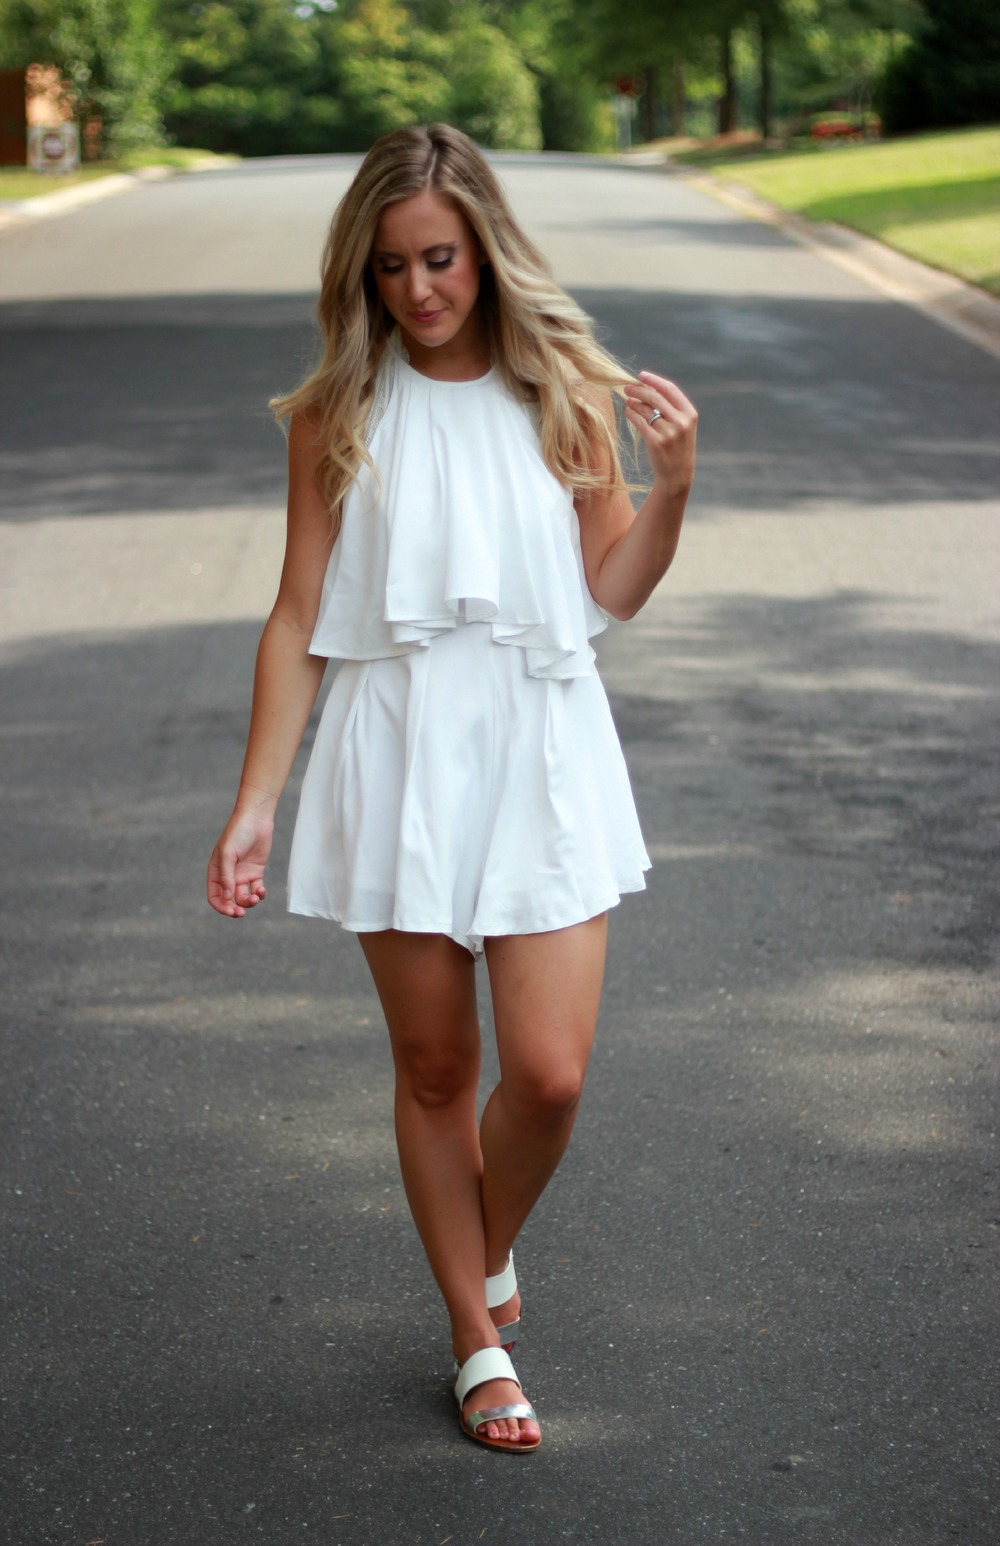 f13260dd332 Romper  Revolve Clothing (also comes in an adorable floral print)